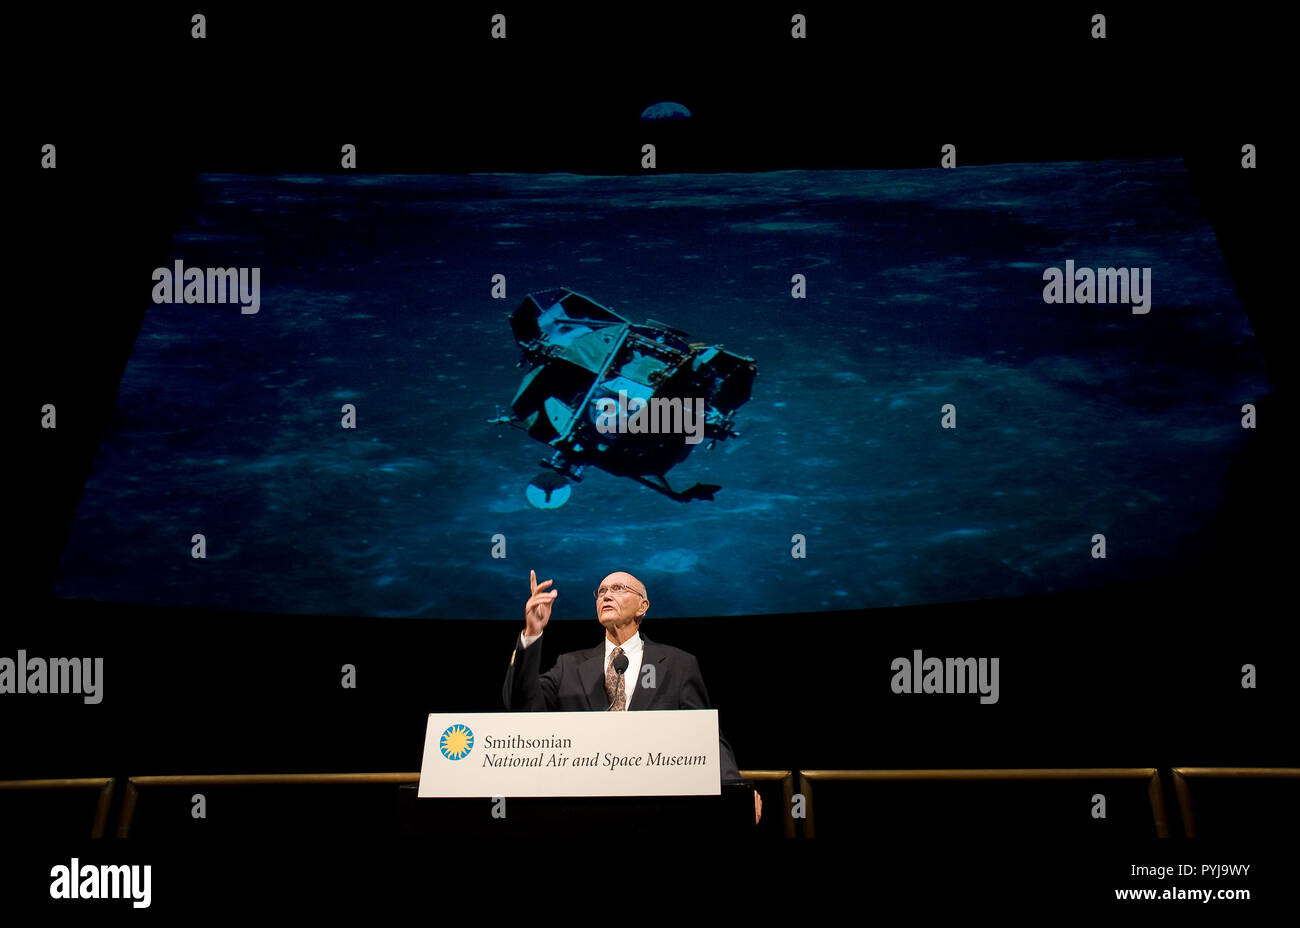 On the eve of the fortieth anniversary of Apollo 11's first human landing on the Moon, Apollo 11 crew member, Michael Collins speaks during a lecture in honor of Apollo 11 at the National Air and Space Museum in Washington, Sunday, July 19, 2009.  (NASA/Bill Ingalls) - Stock Image